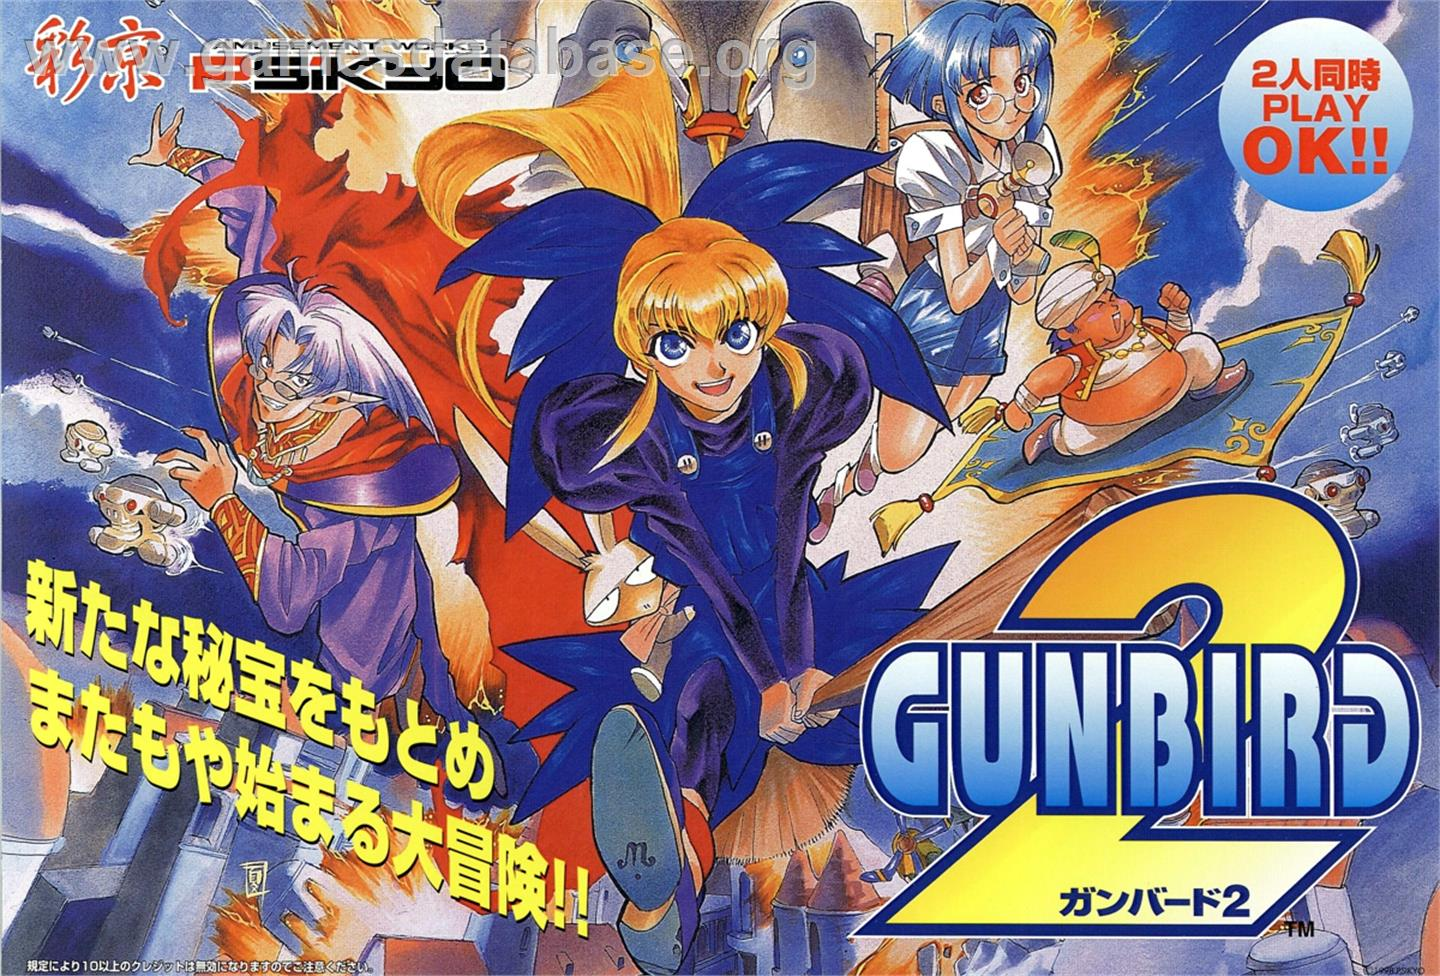 Gunbird 2 - Arcade - Artwork - Advert